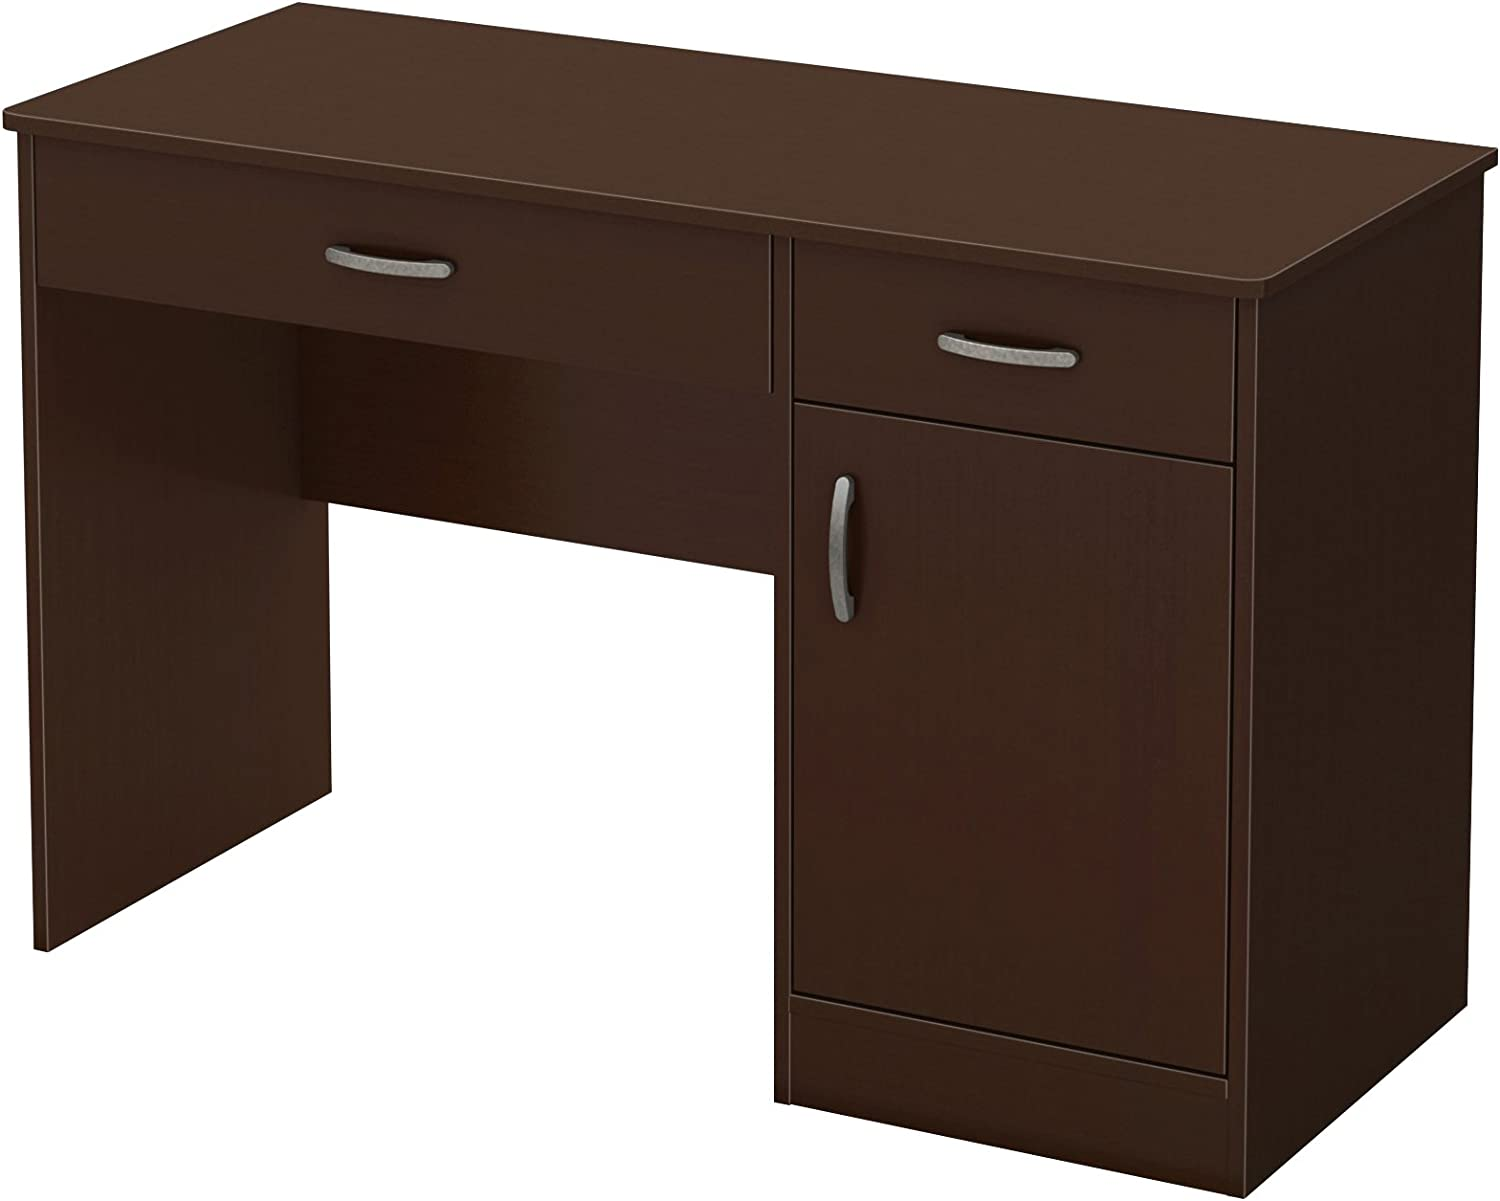 South Shore Small Computer Desk with Drawers, Chocolate